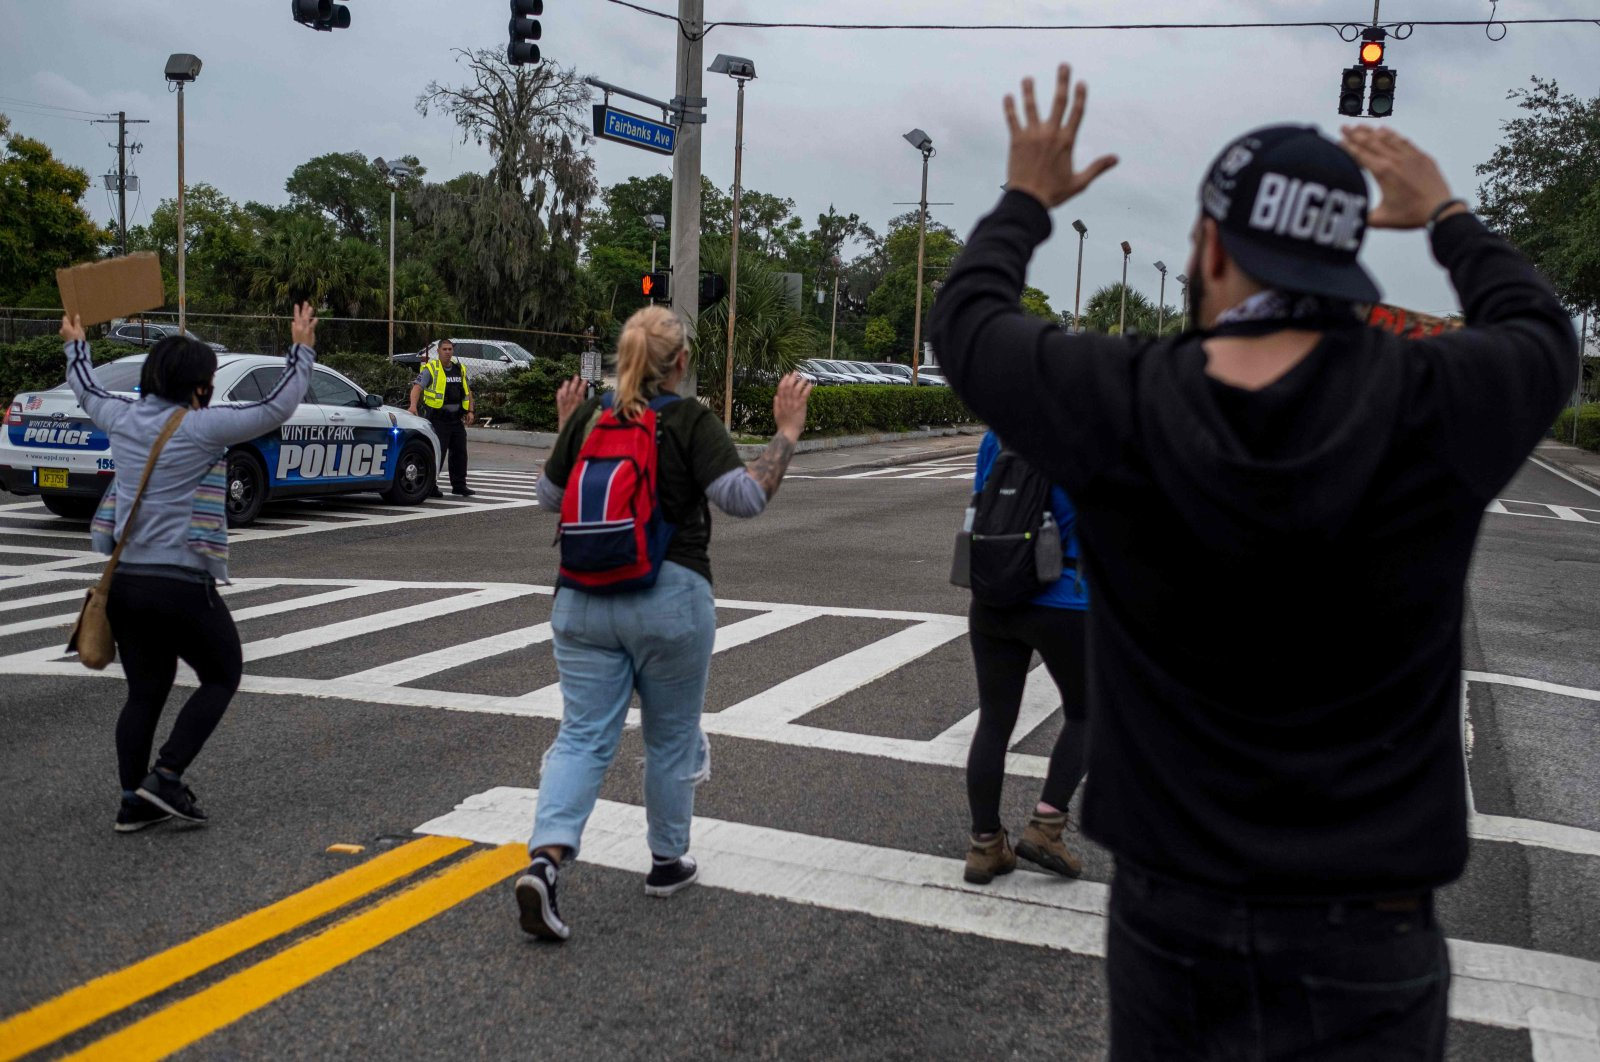 Protesters march during a rally in response to the recent death of George Floyd while in police custody in Minneapolis, in Winter Park, Florida on June 7, 2020. (AFP Photo)